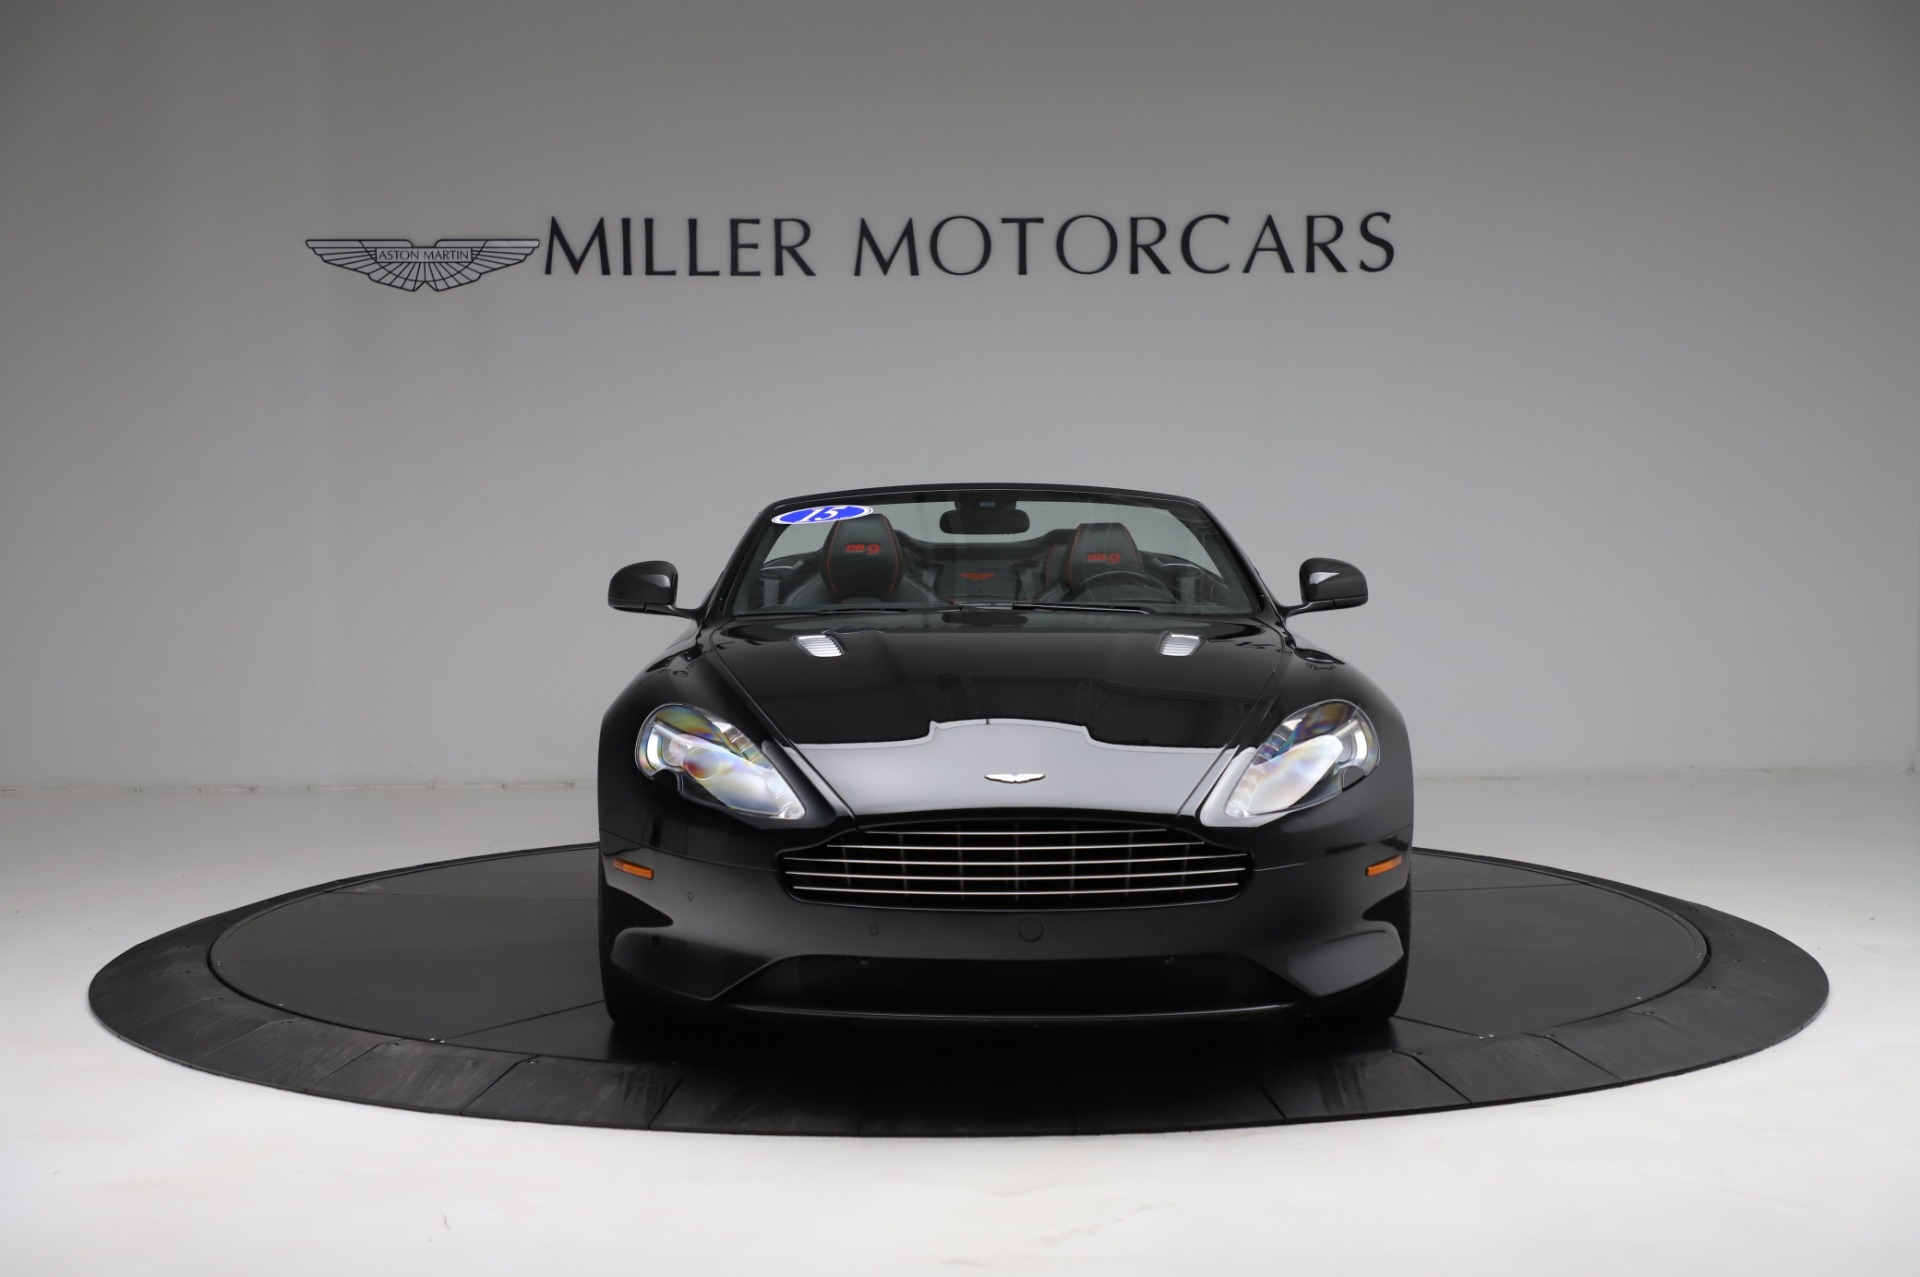 Used 2015 Aston Martin DB9 Carbon Edition Volante For Sale In Westport, CT 1919_p11